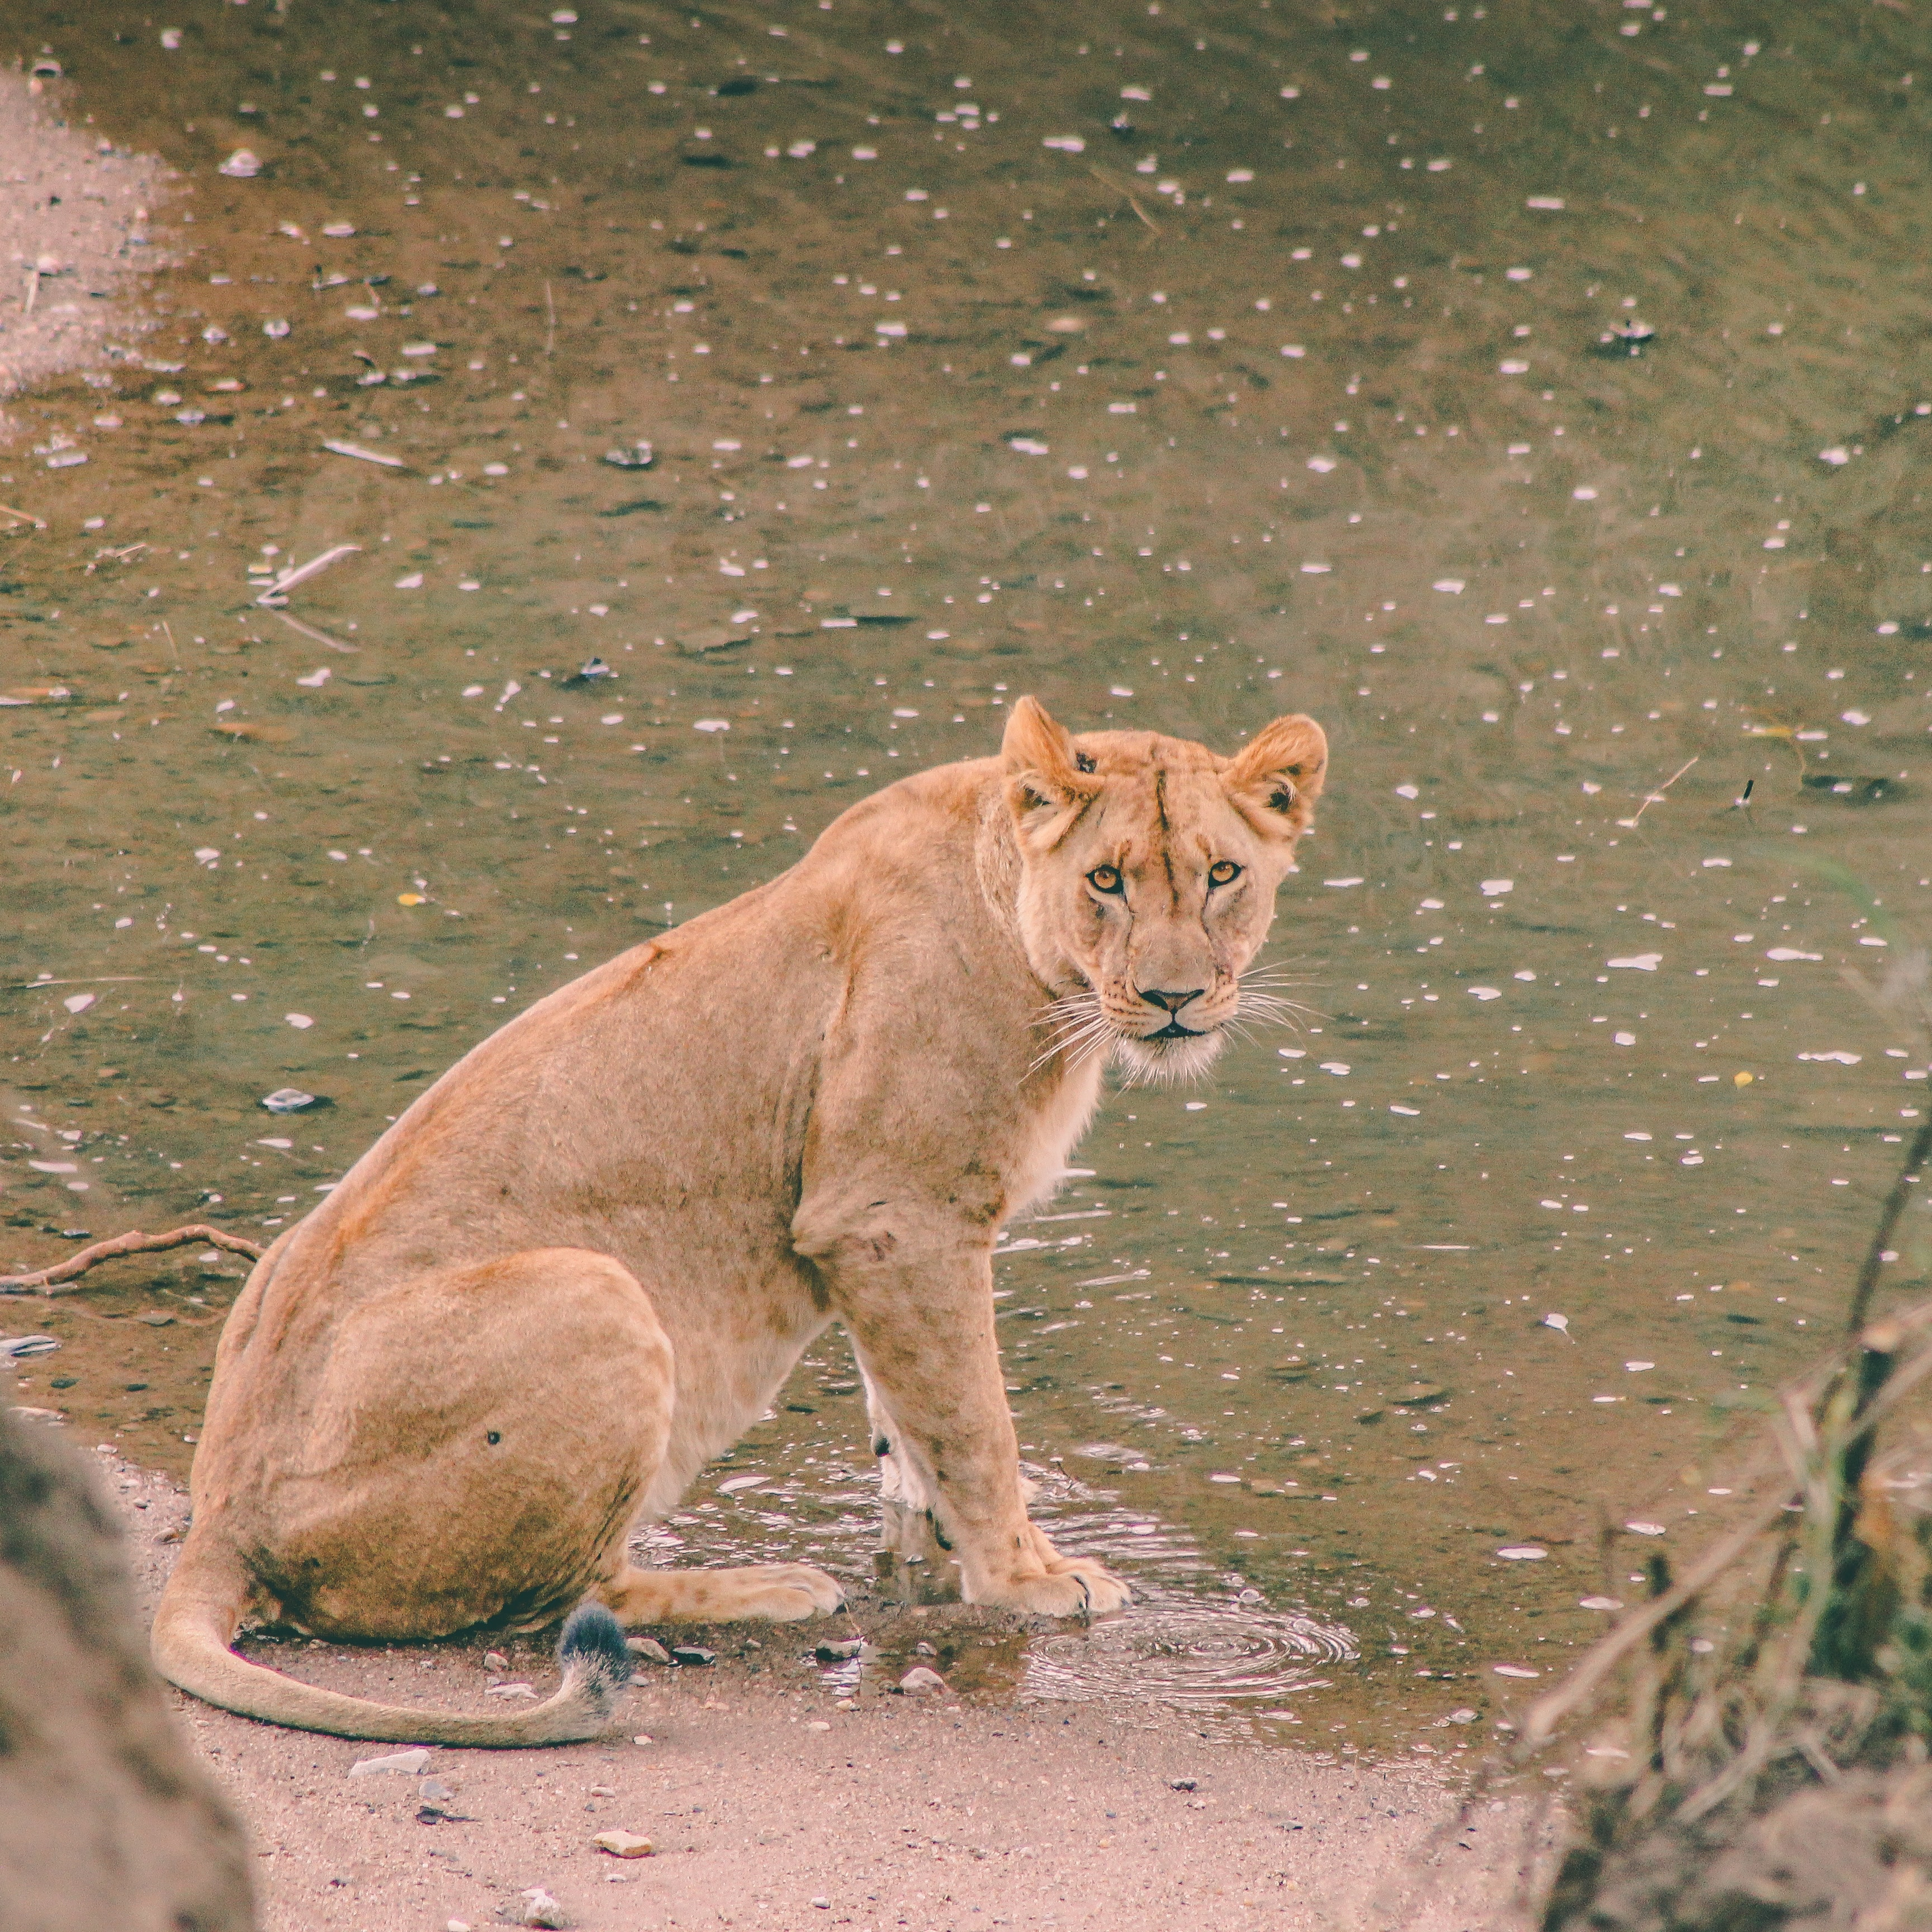 lioness beside body of water